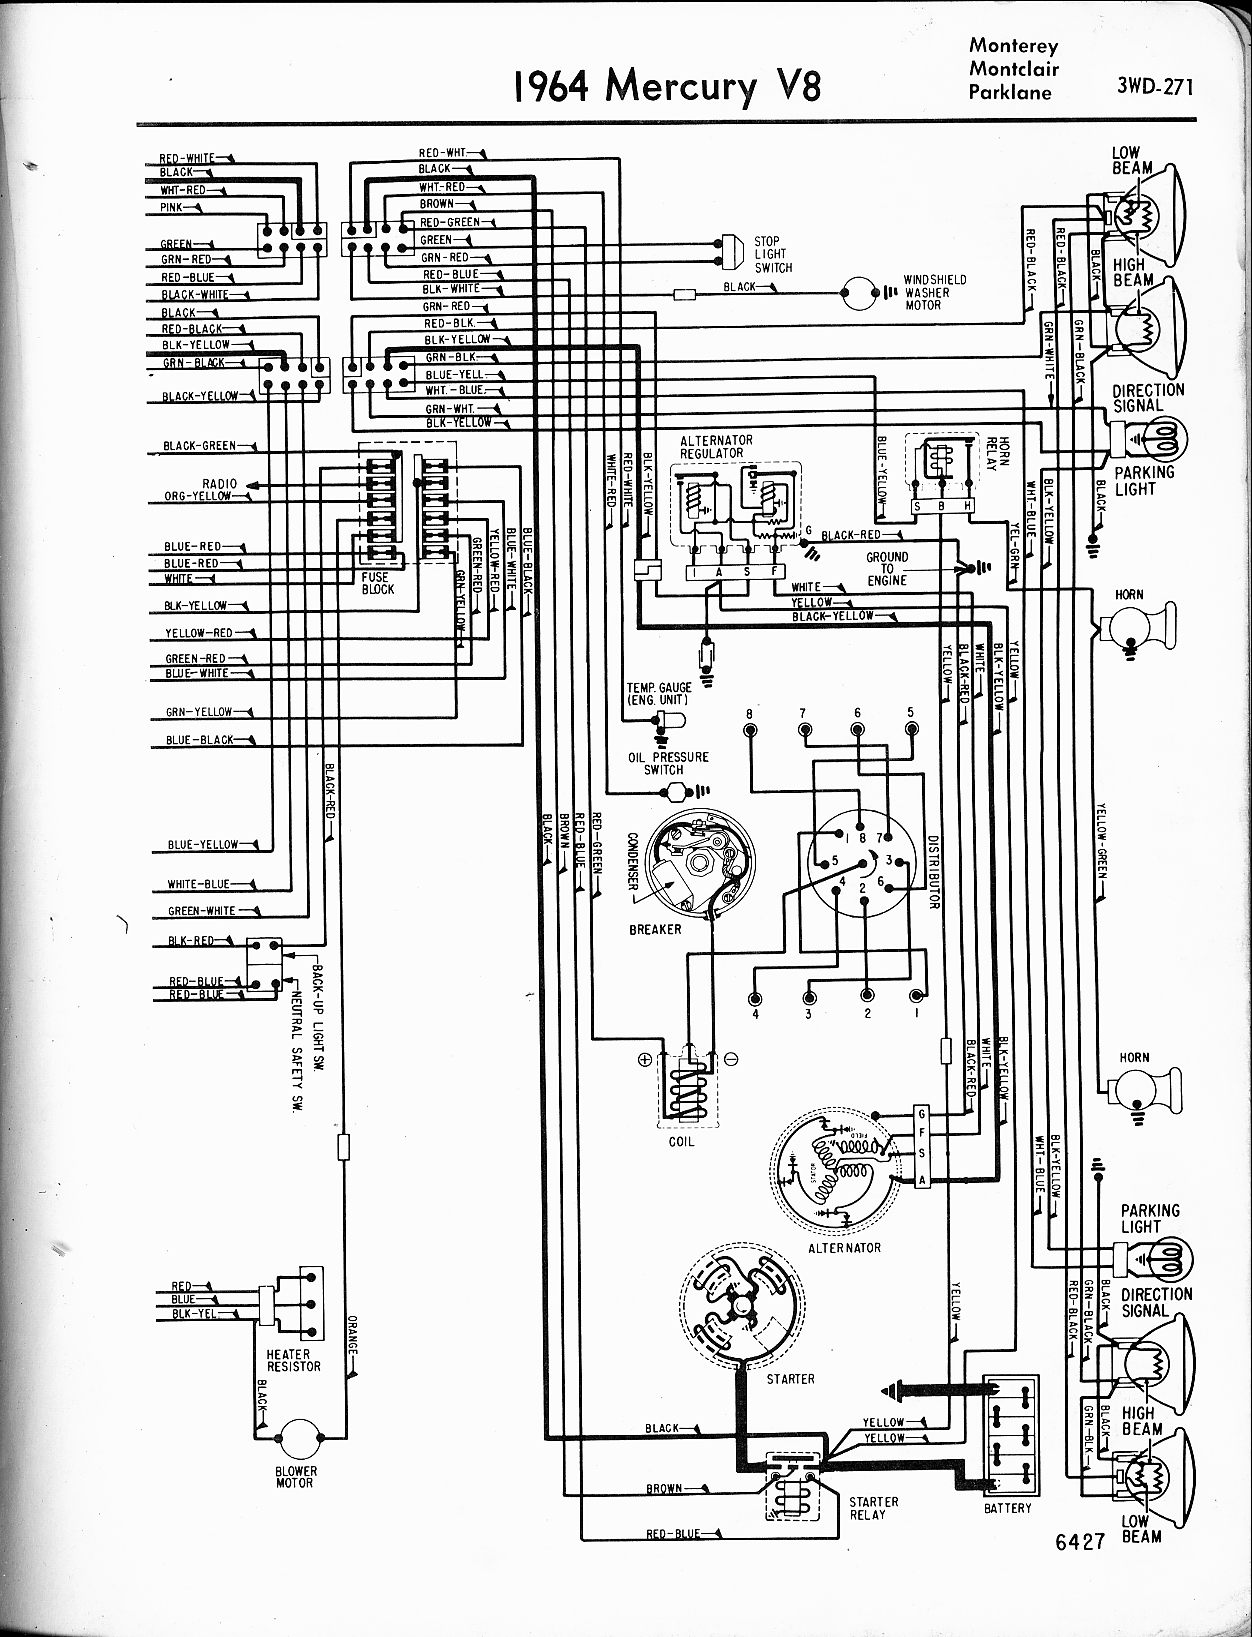 MWire5765 271 mercury wiring diagrams the old car manual project 1955 thunderbird fuse box location at suagrazia.org